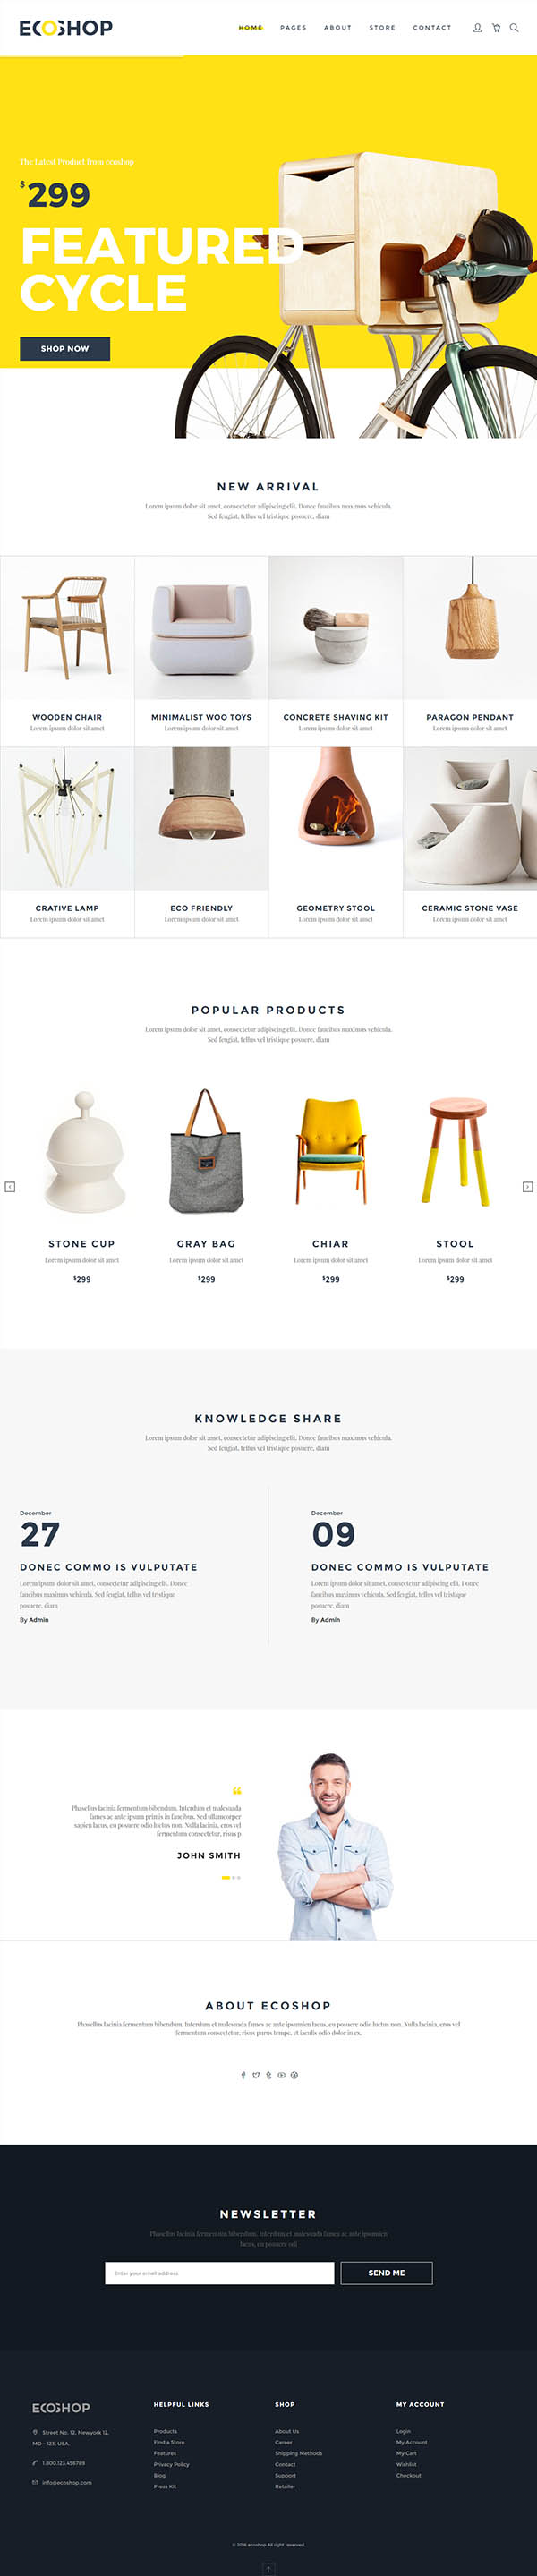 ECOSHOP – Multipurpose eCommerce HTML5 Template